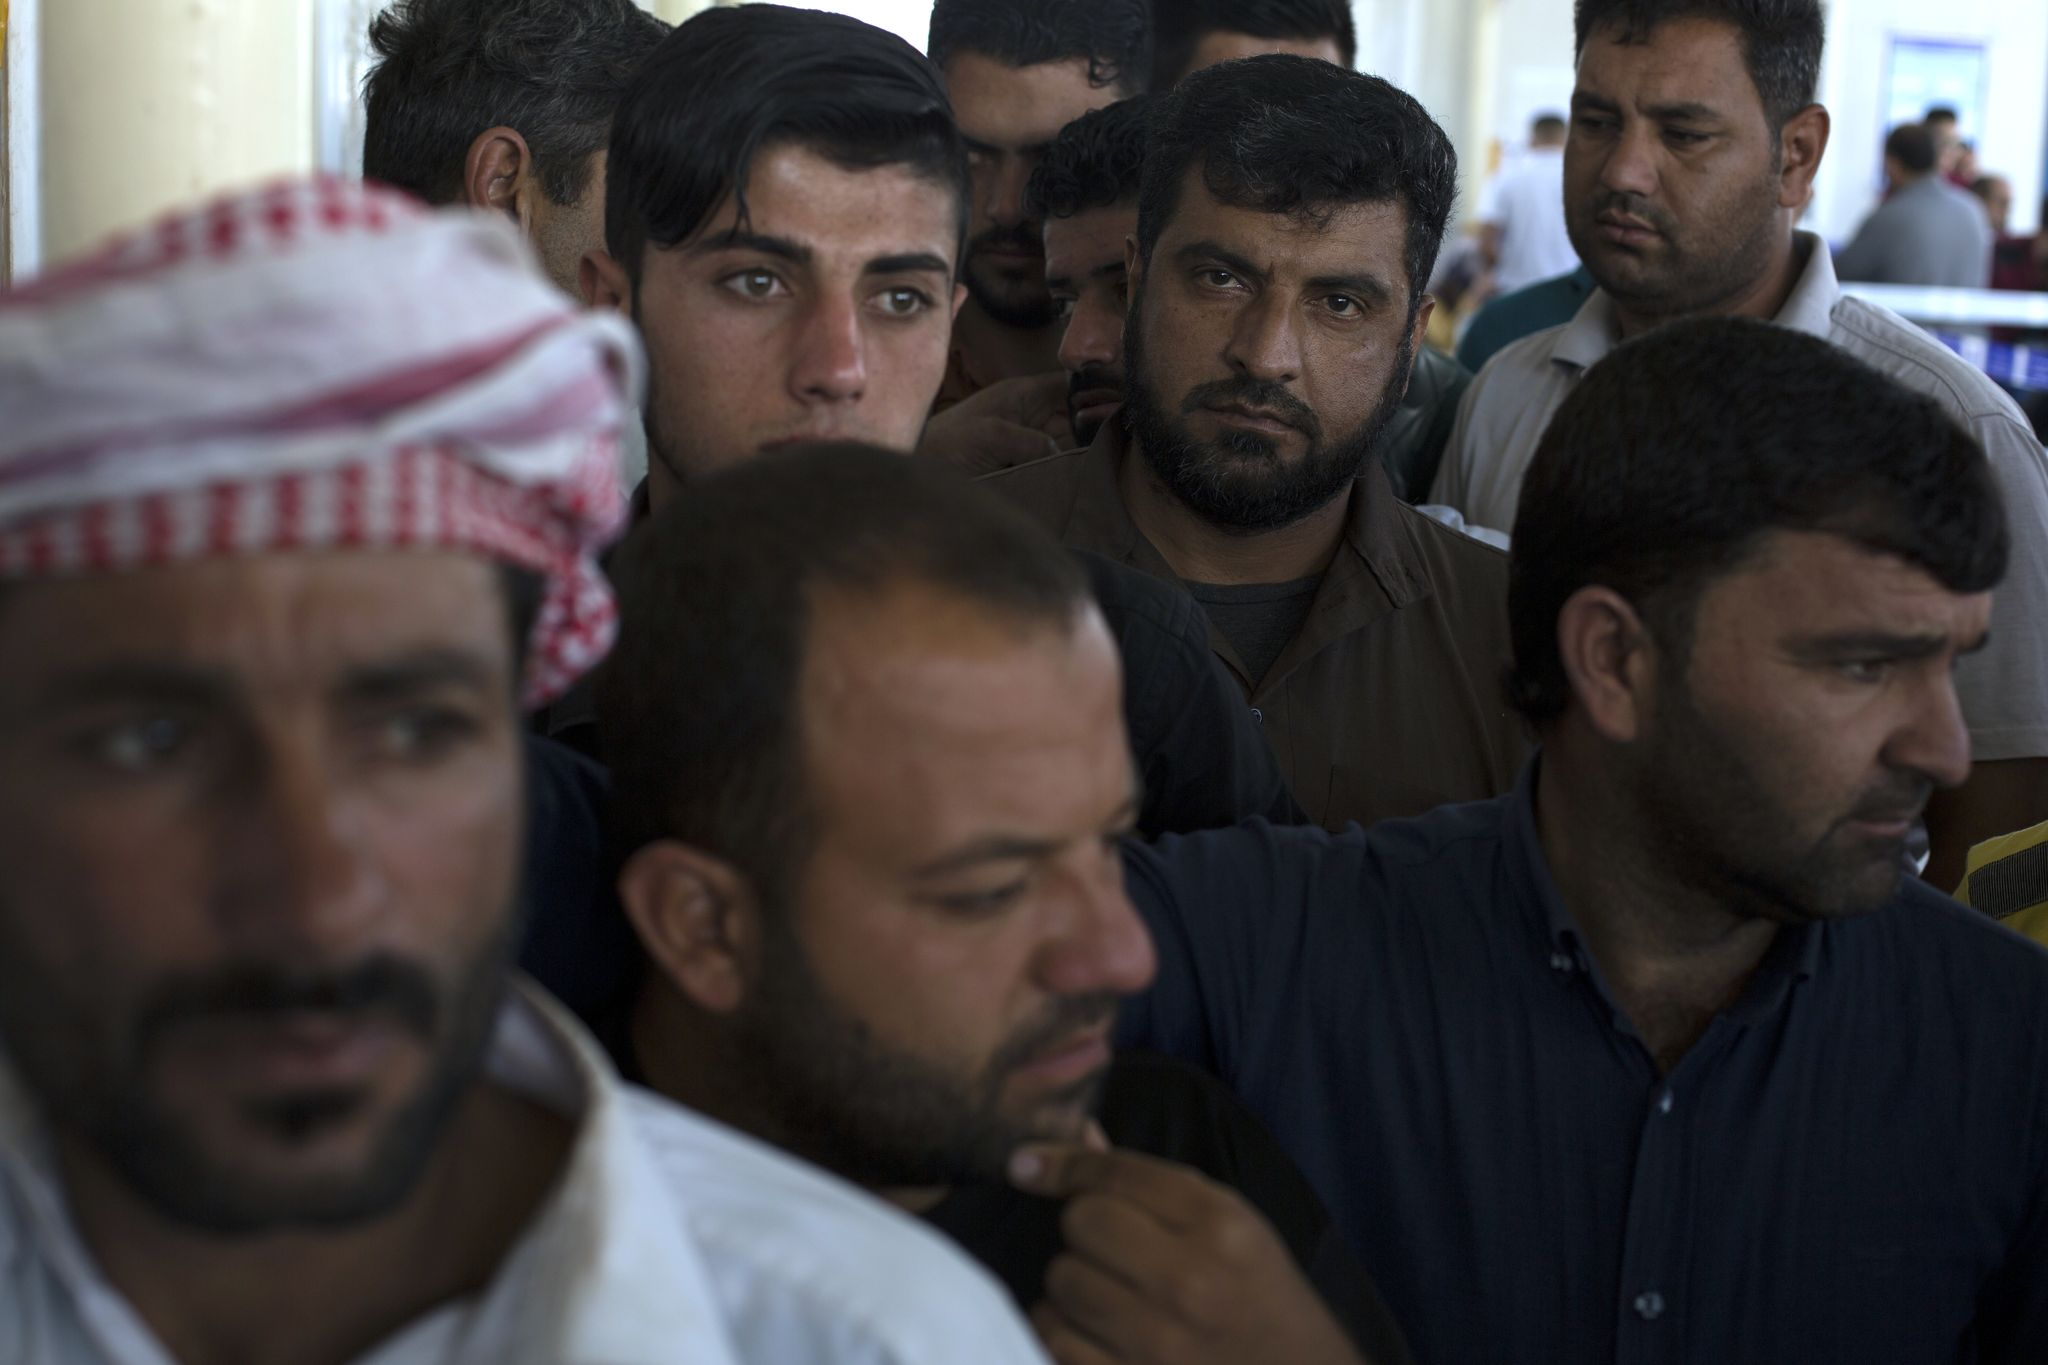 Mosul residents say corruption rises after Islamic State's fall in Iraq